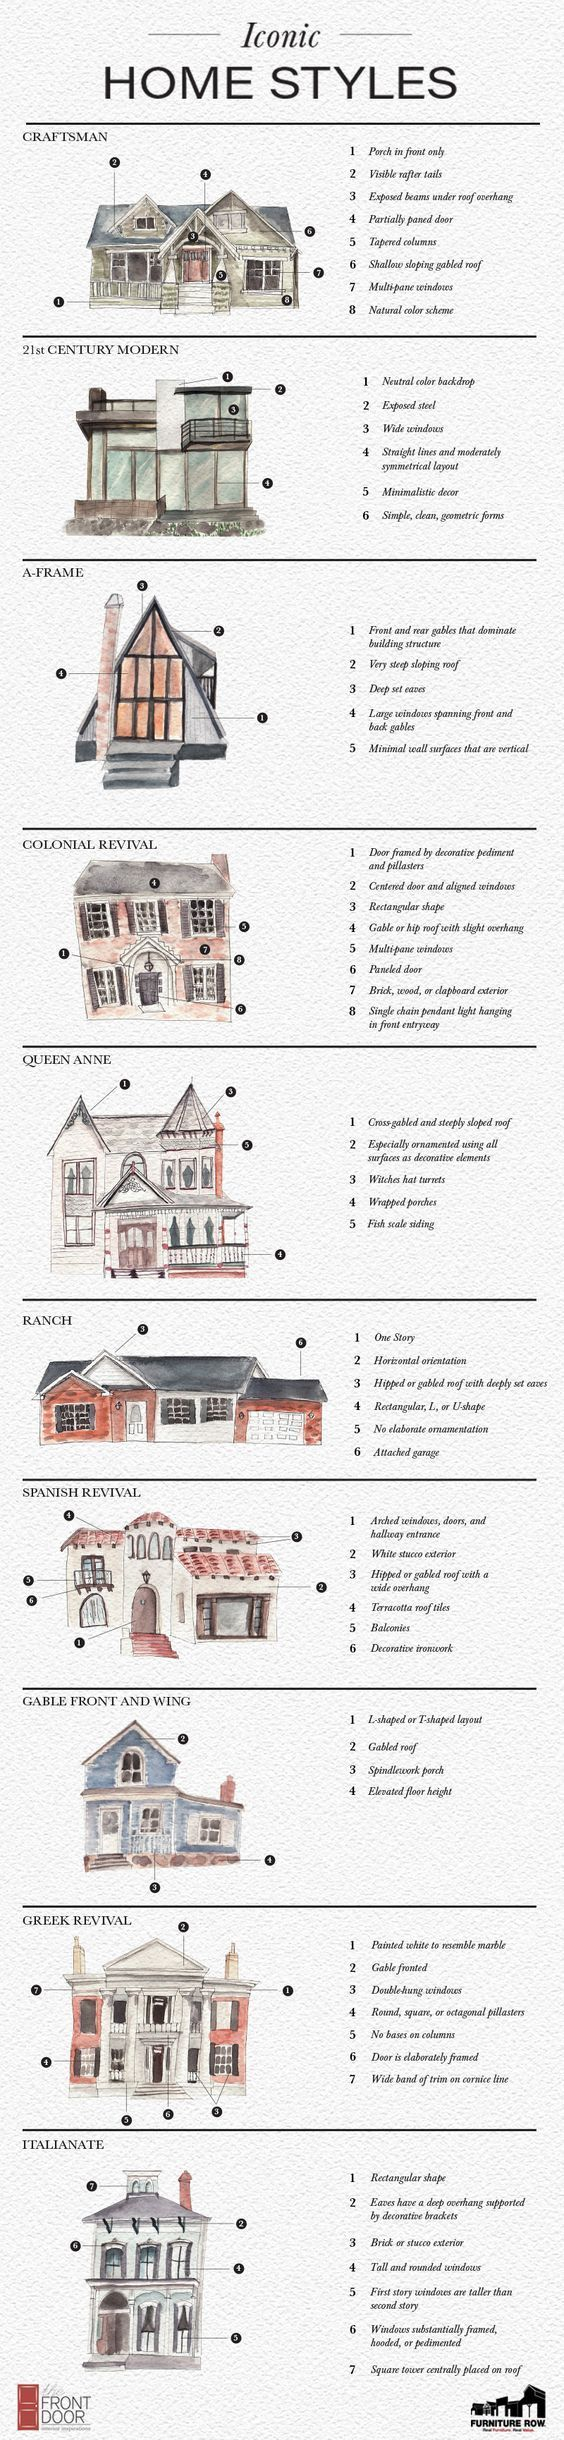 Gallery Of 26 Handy Architecture Cheat Sheets 22 Home Styles